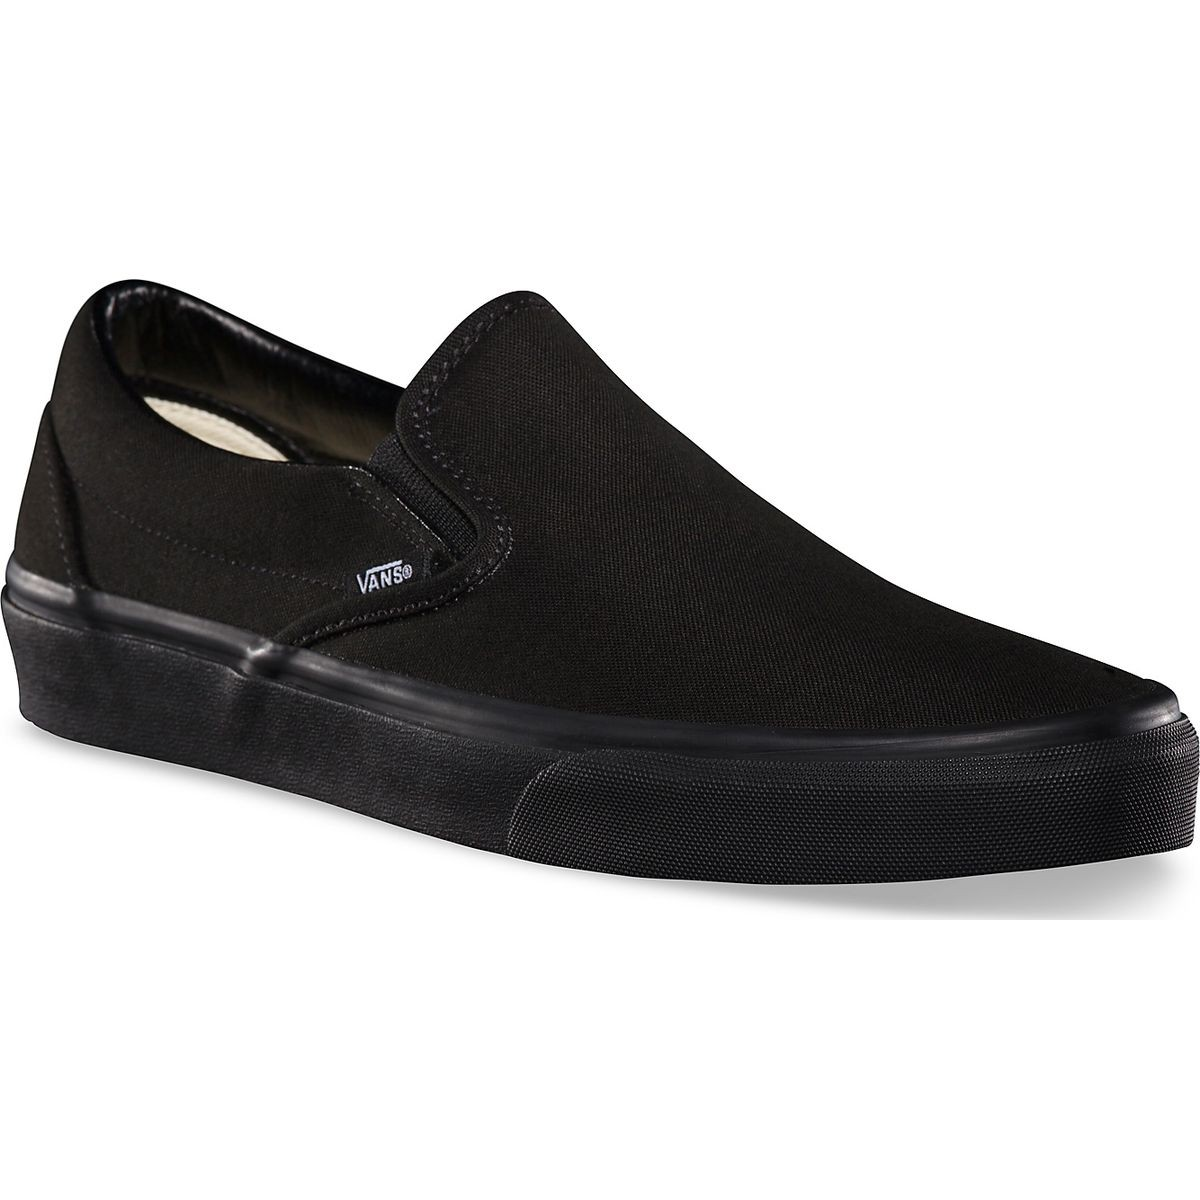 Vans Classic Slip On Shoes - Black/Black